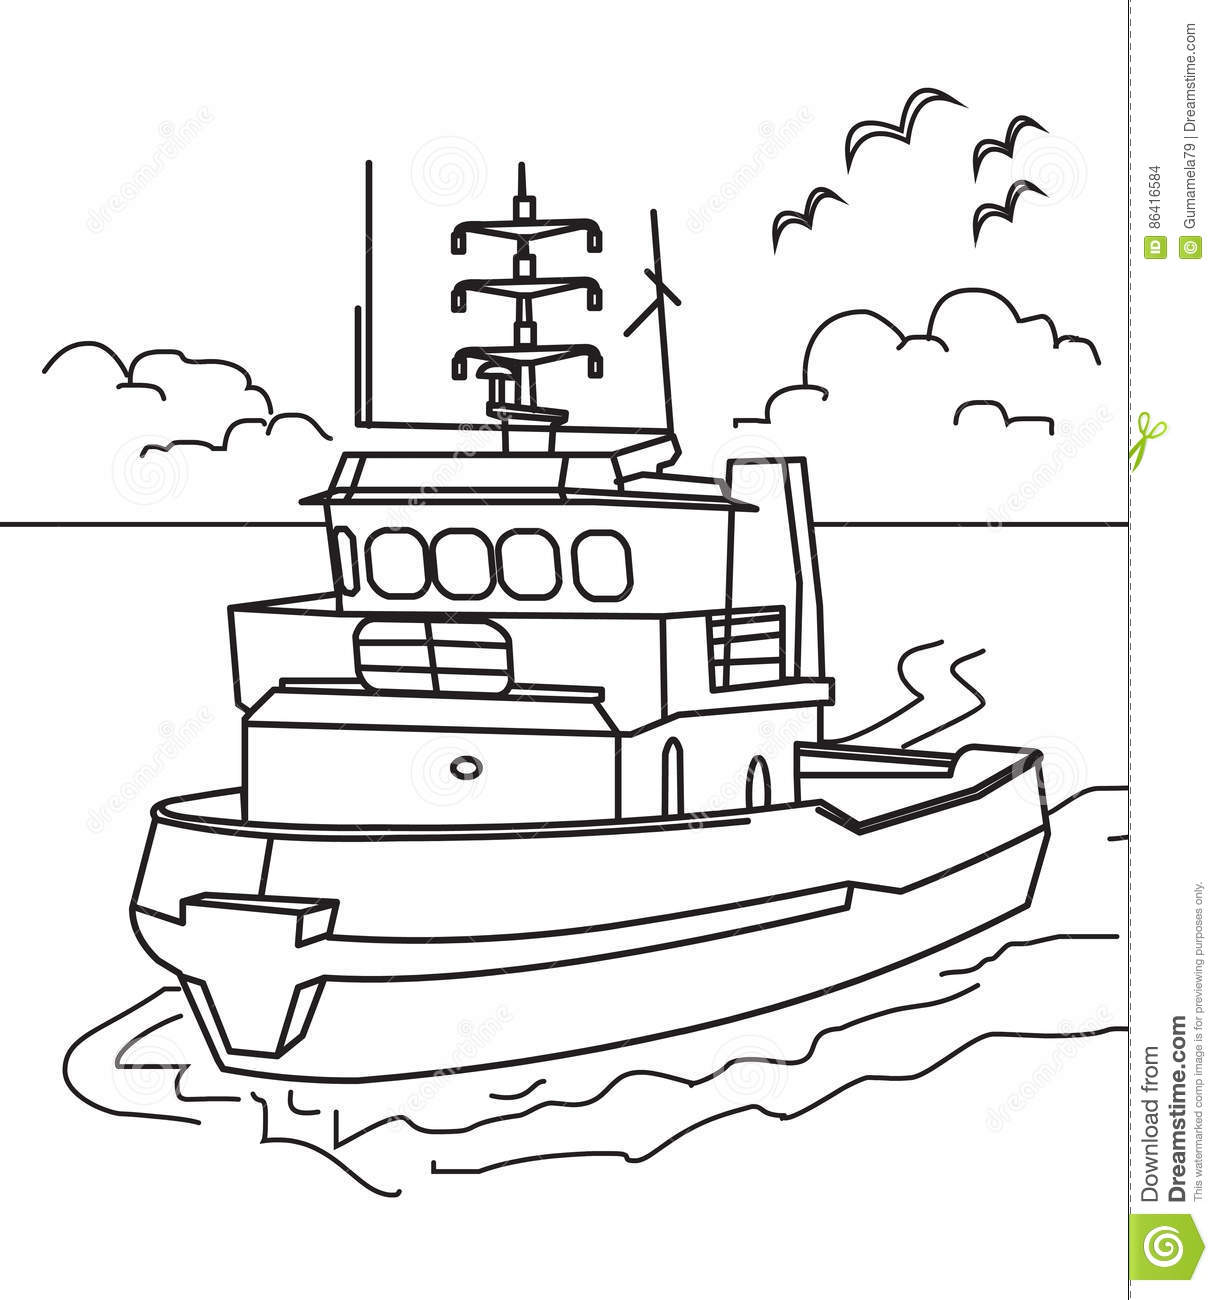 Boat coloring page stock illustration. Illustration of boat - 86416584